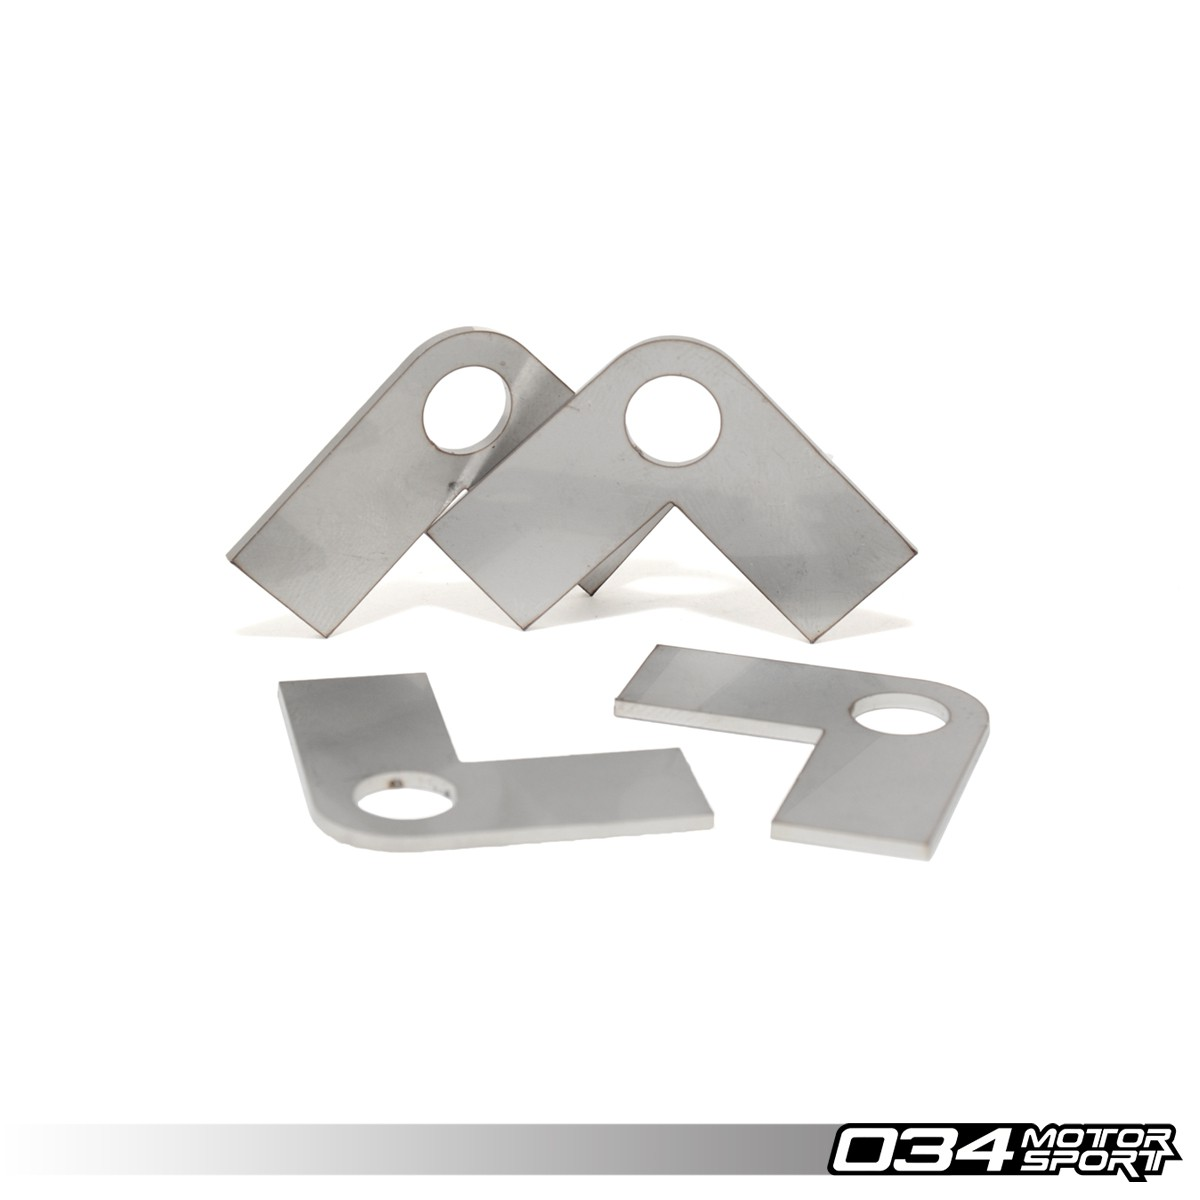 "Locking Tab, M8 or 5/16"" Stud or Bolt 